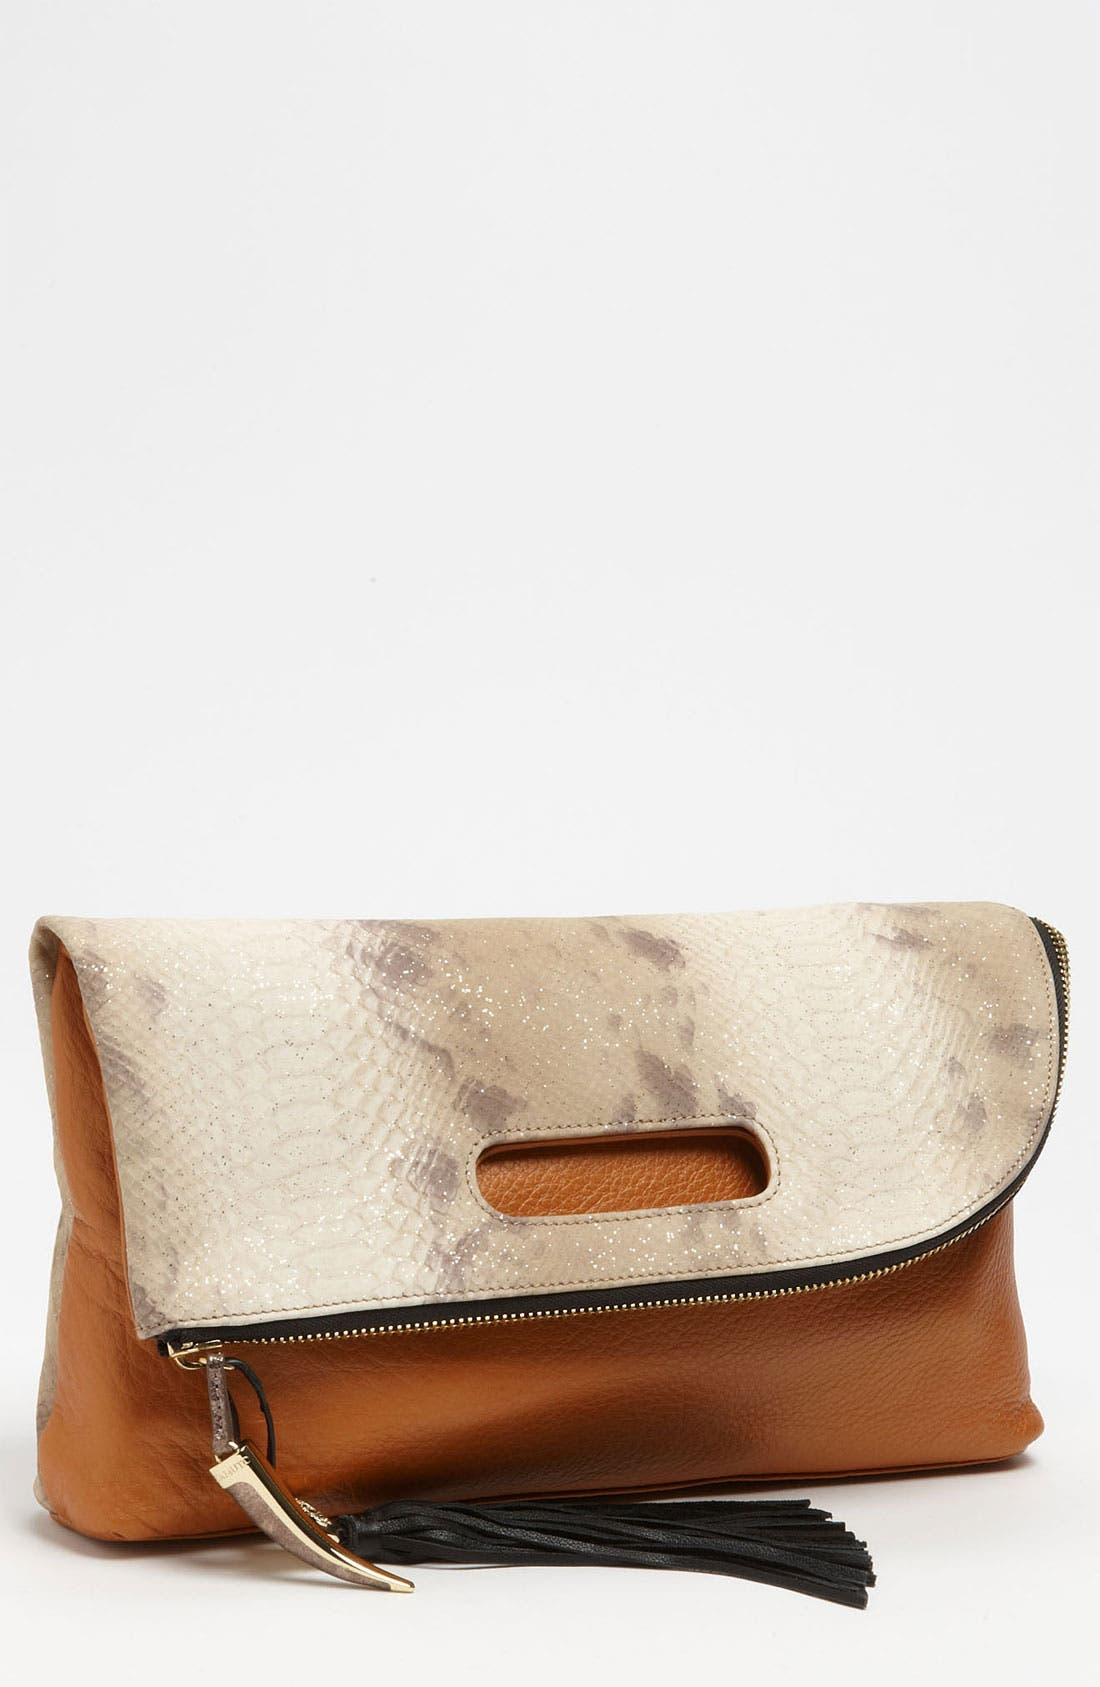 Alternate Image 1 Selected - Vince Camuto 'Juliann' Clutch